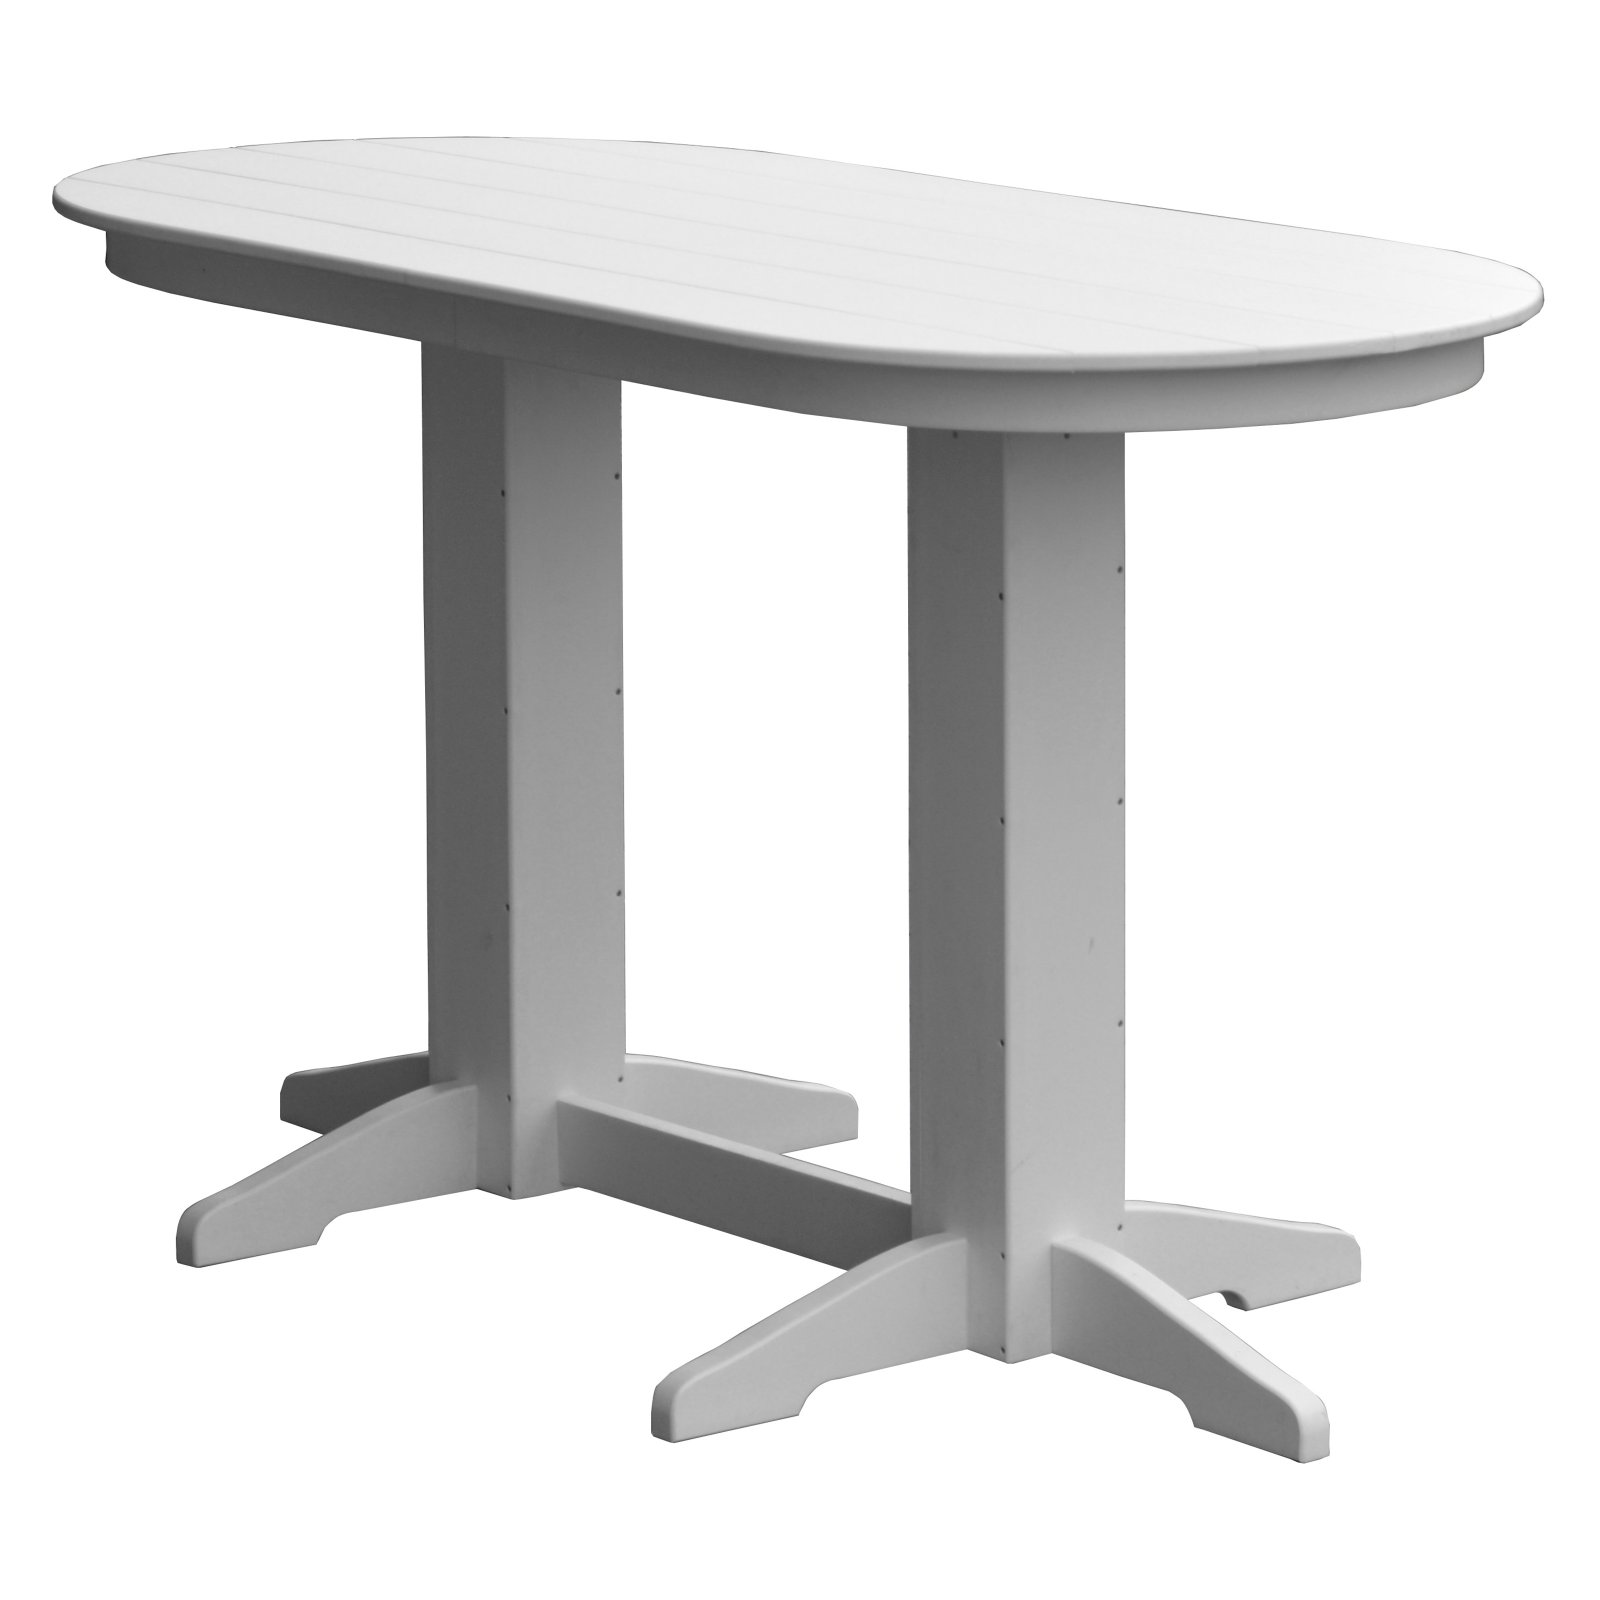 Radionic Hi Tech Rochester Recycled Plastic Oval Dual Pedestal Bar